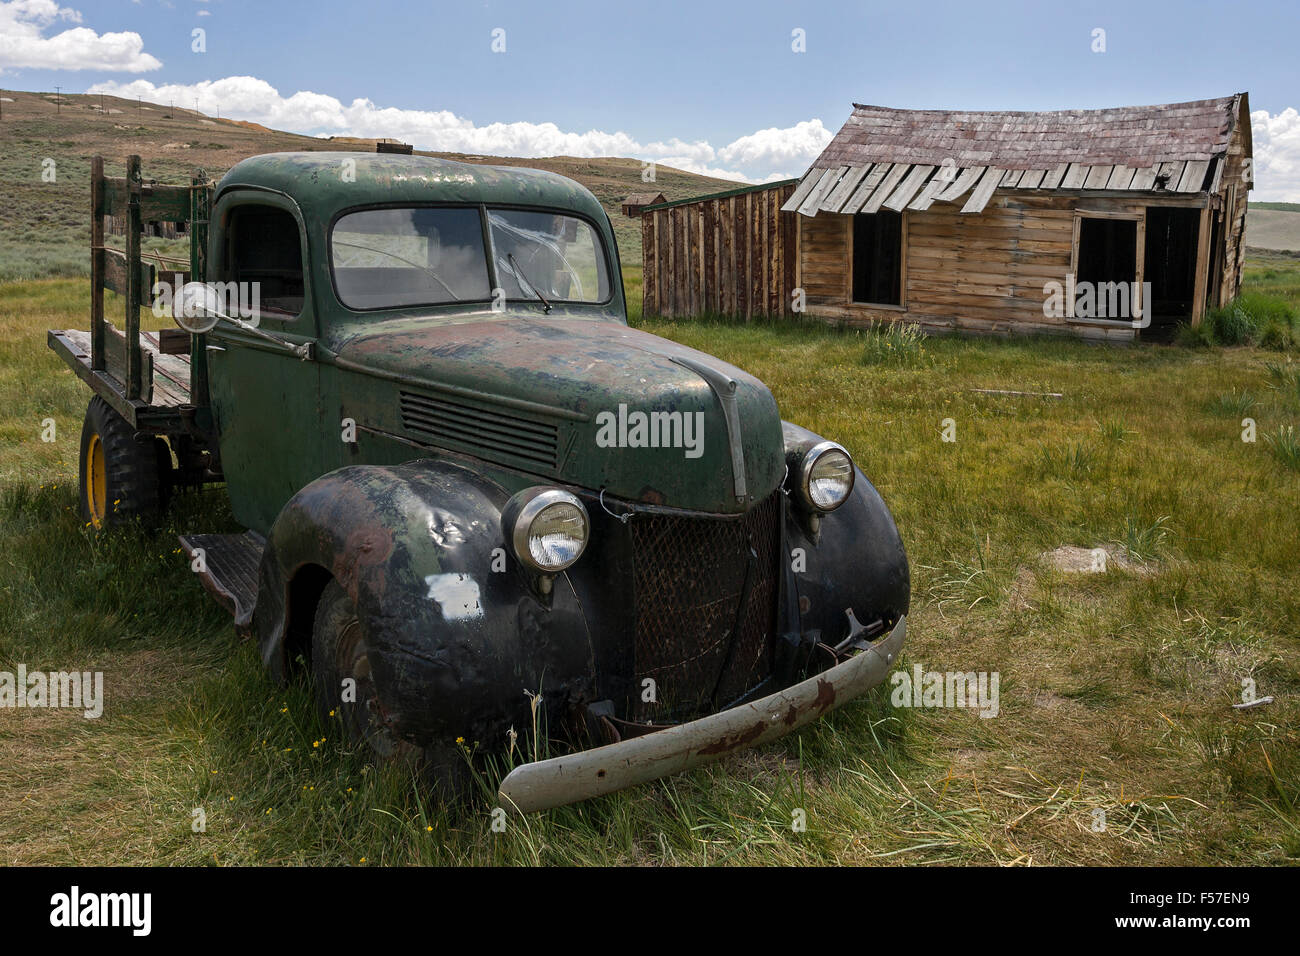 Vintage car built in the 30s, old wooden house, ghost town, old gold mining town, Bodie State Historic Park, Bodie, - Stock Image